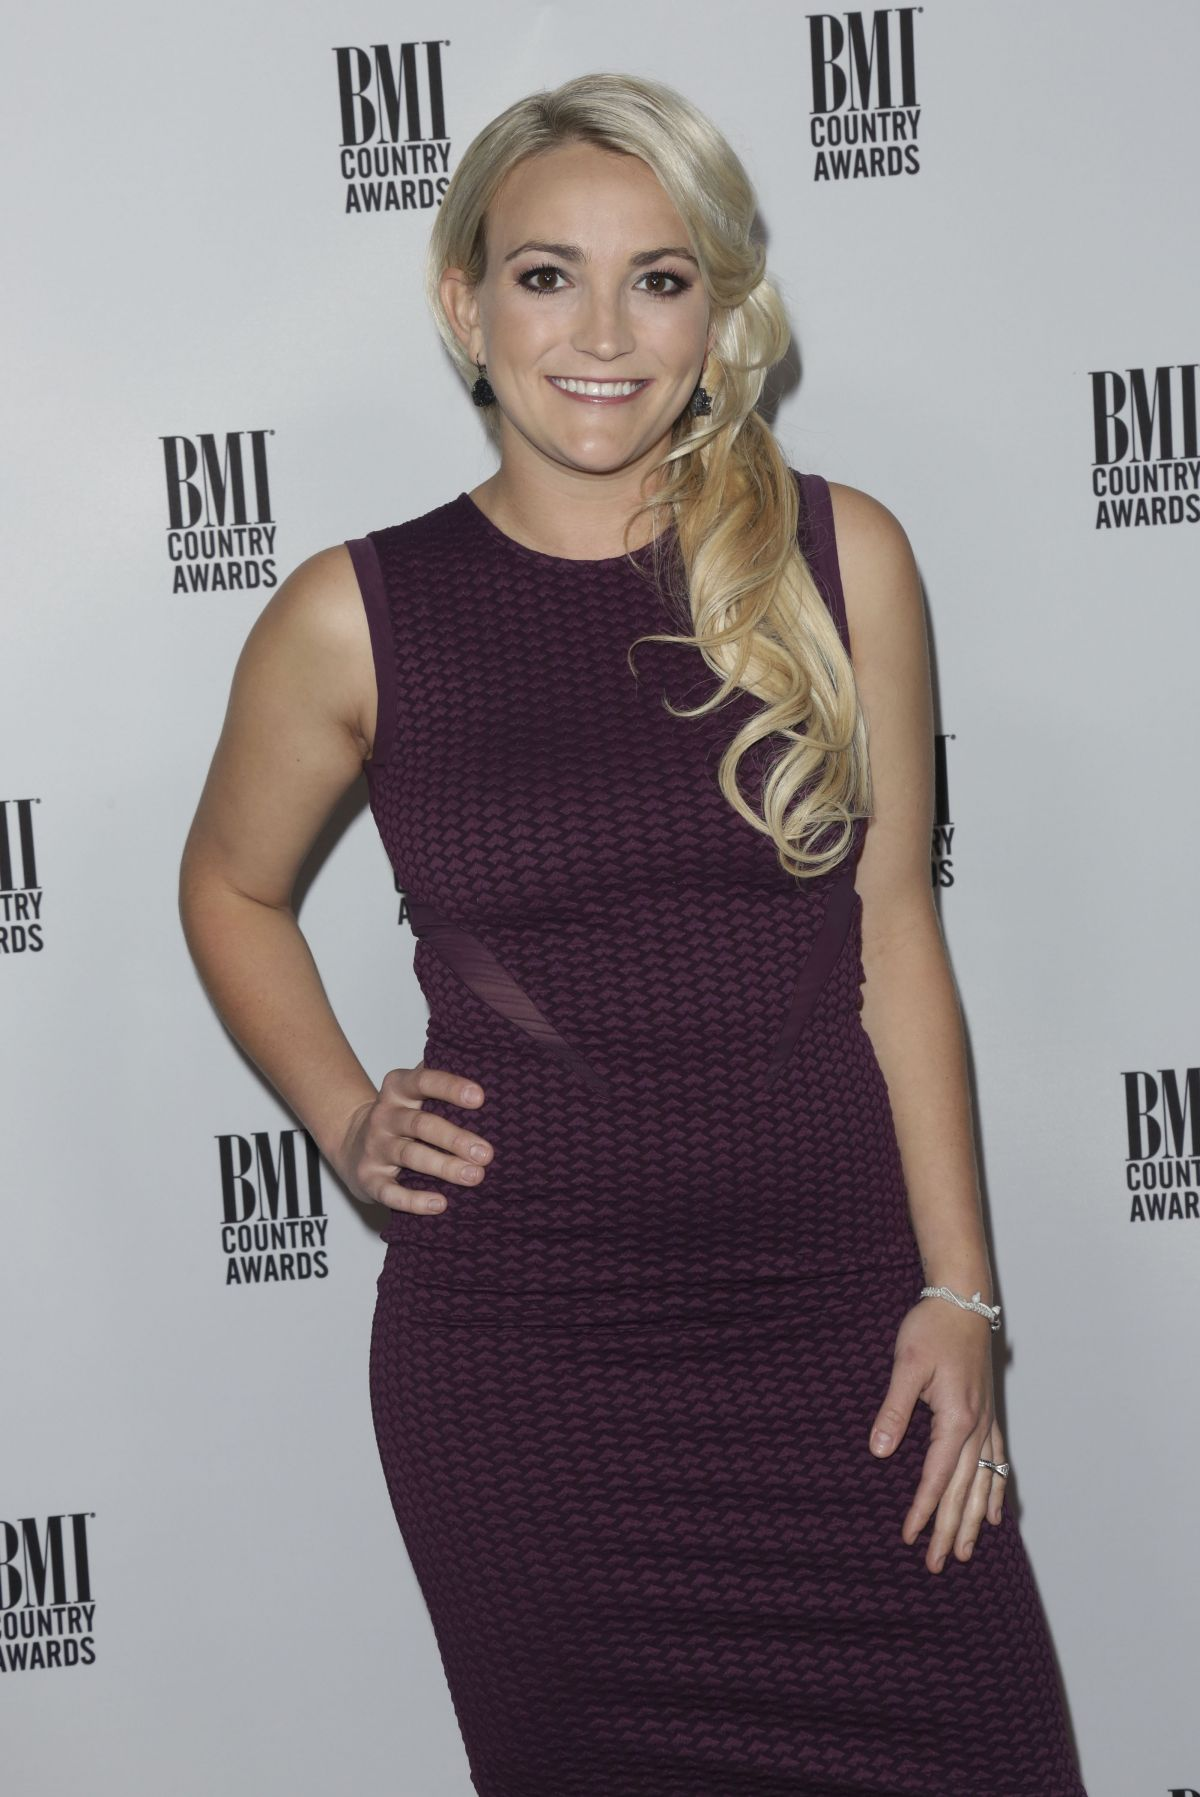 JAMIE LYNN SPEARS at 64th Annual BMI Country Awards in Nashville 11/01/2016